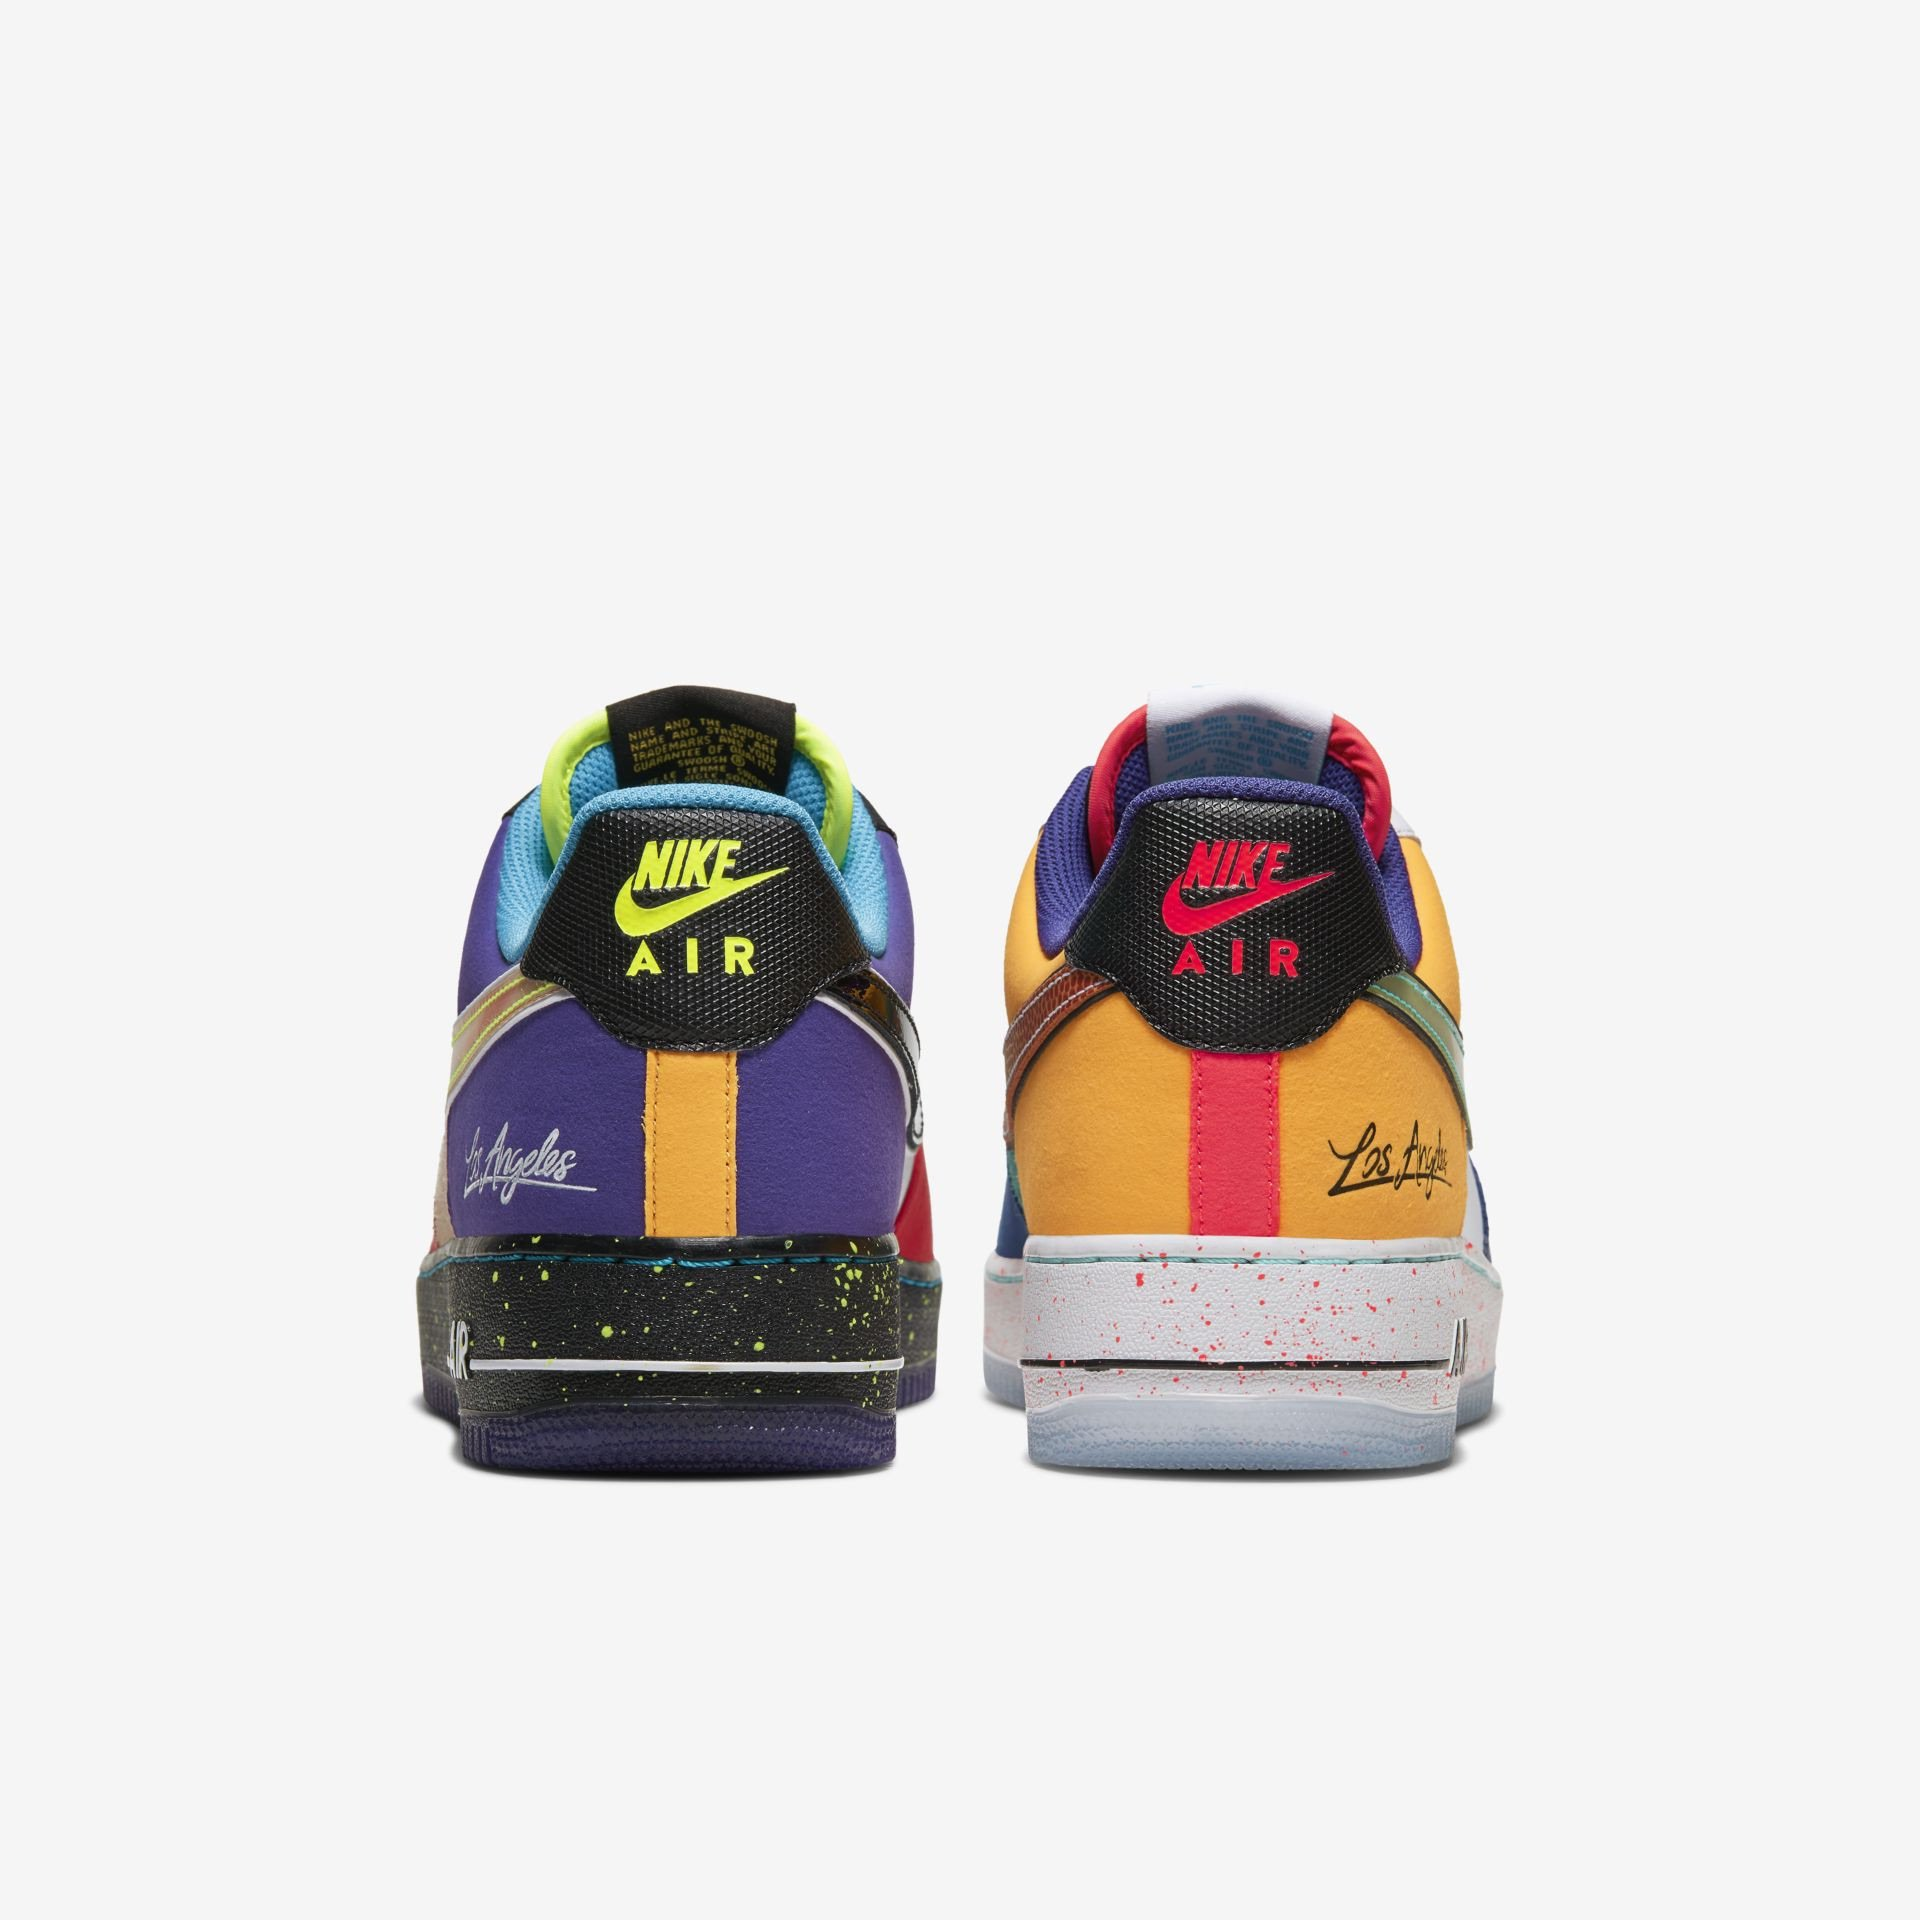 nike-air-force-1-low-what-the-la-ct1117-100-release-2019